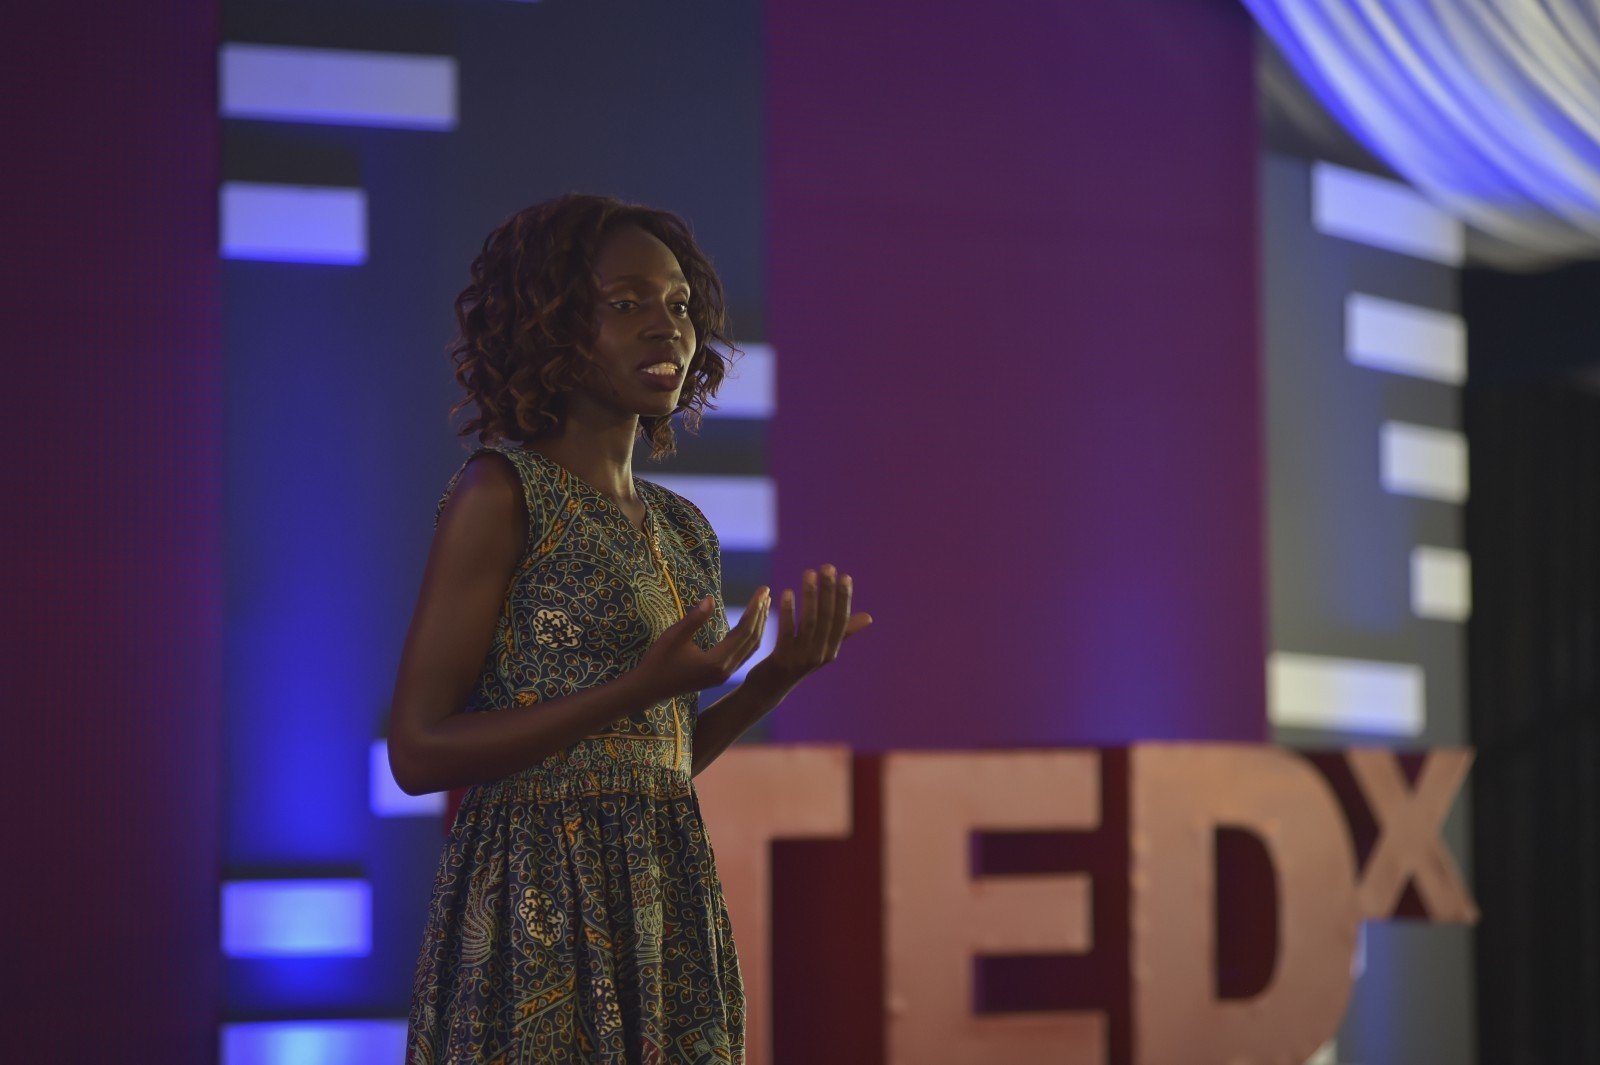 Mercy Akuot, who supervises a women and girls empowerment program in Kakuma refugee camp, speaks on stage at at the first ever TEDx event held at a refugee camp